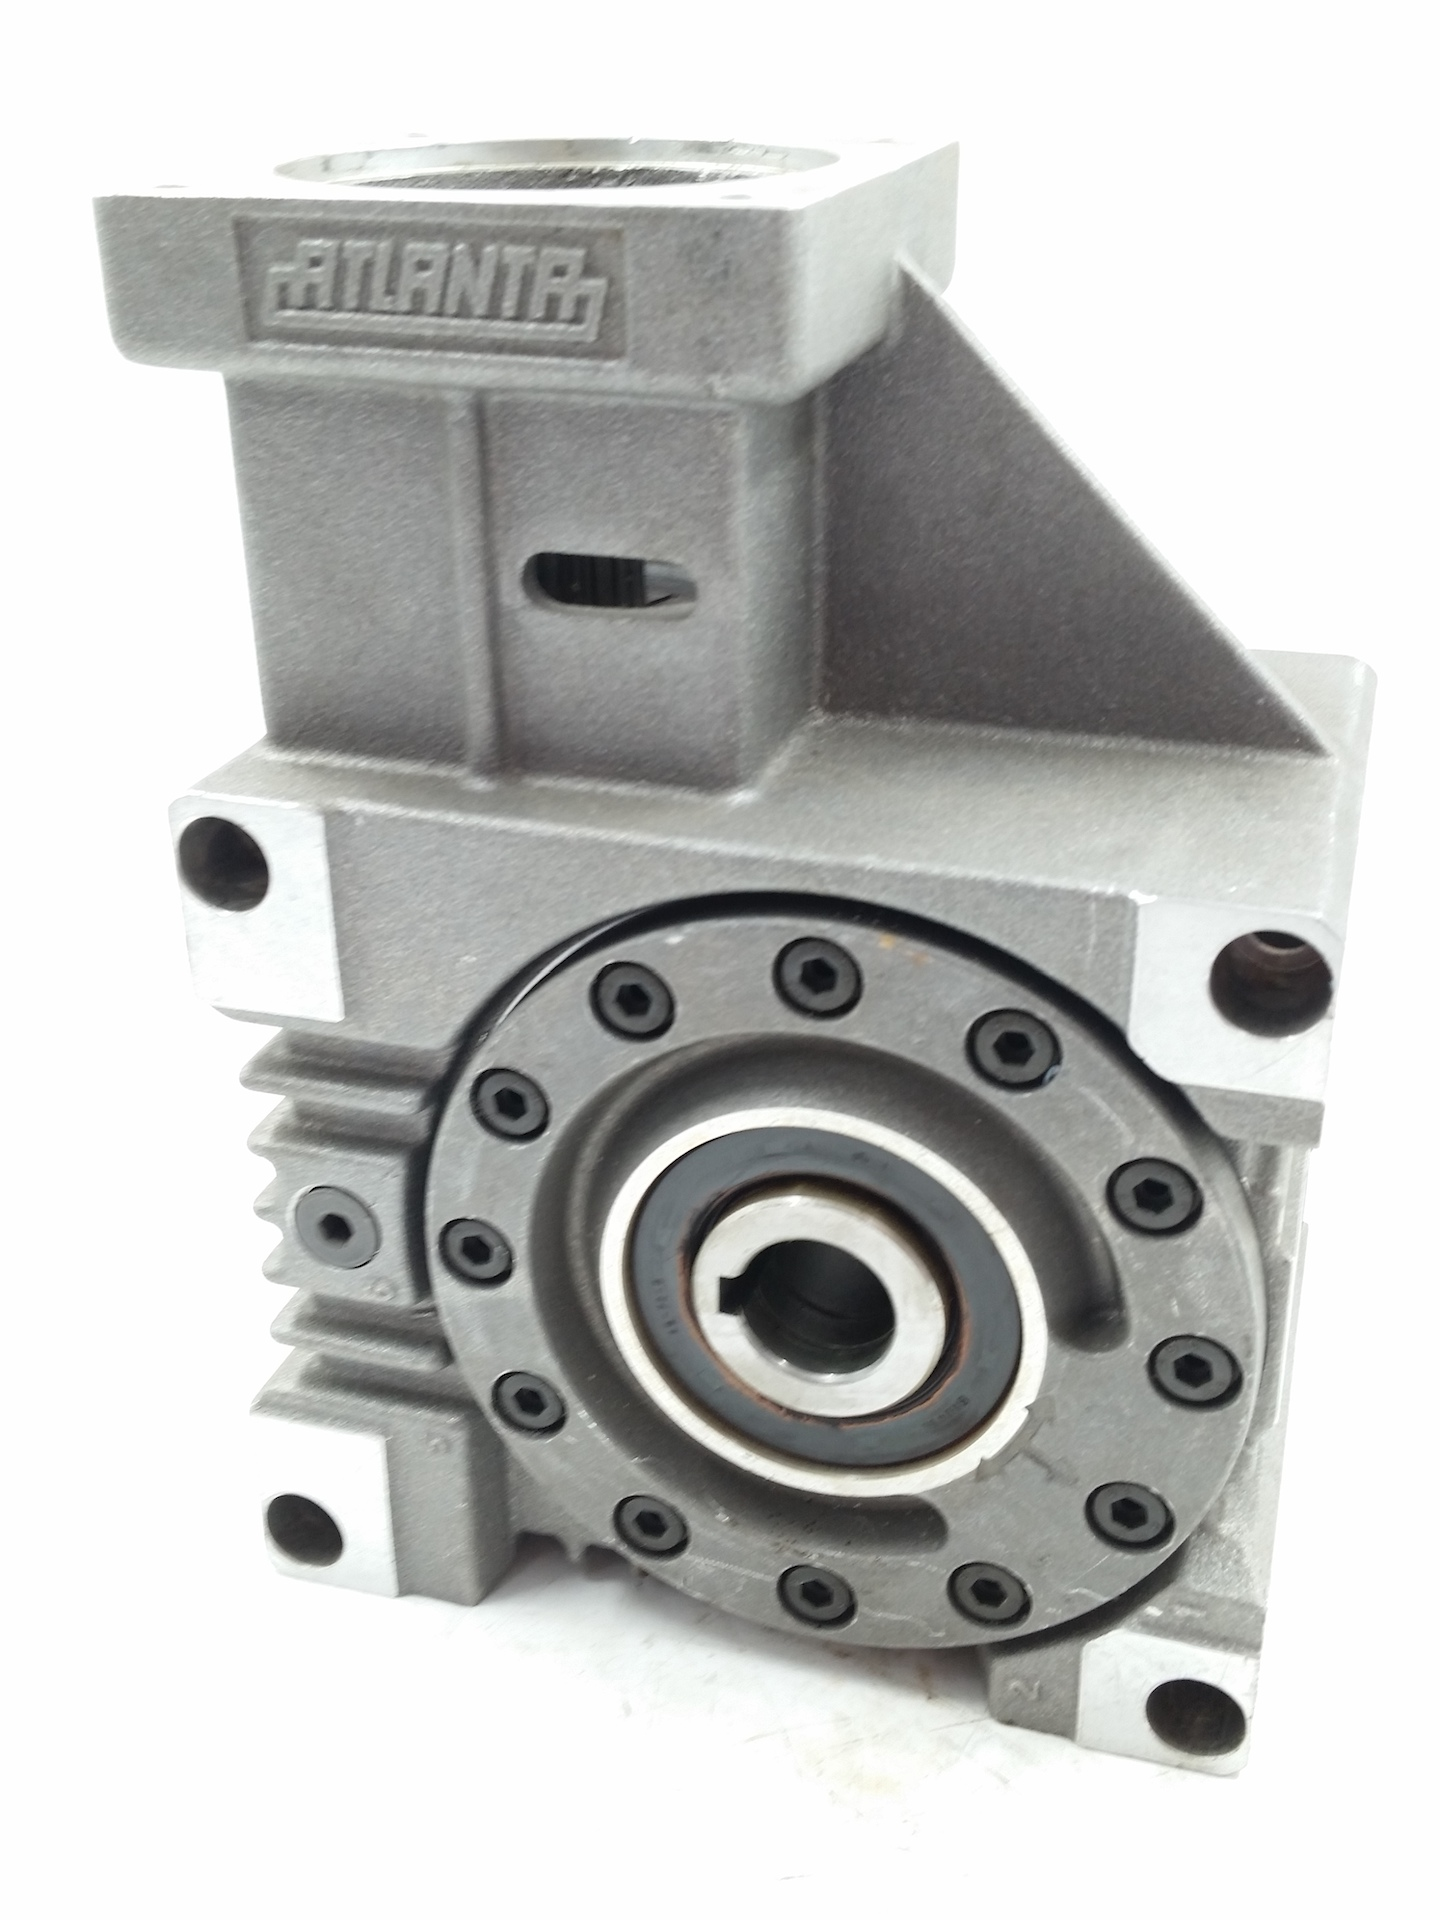 Atlanta Gear Reducer 58-44-339